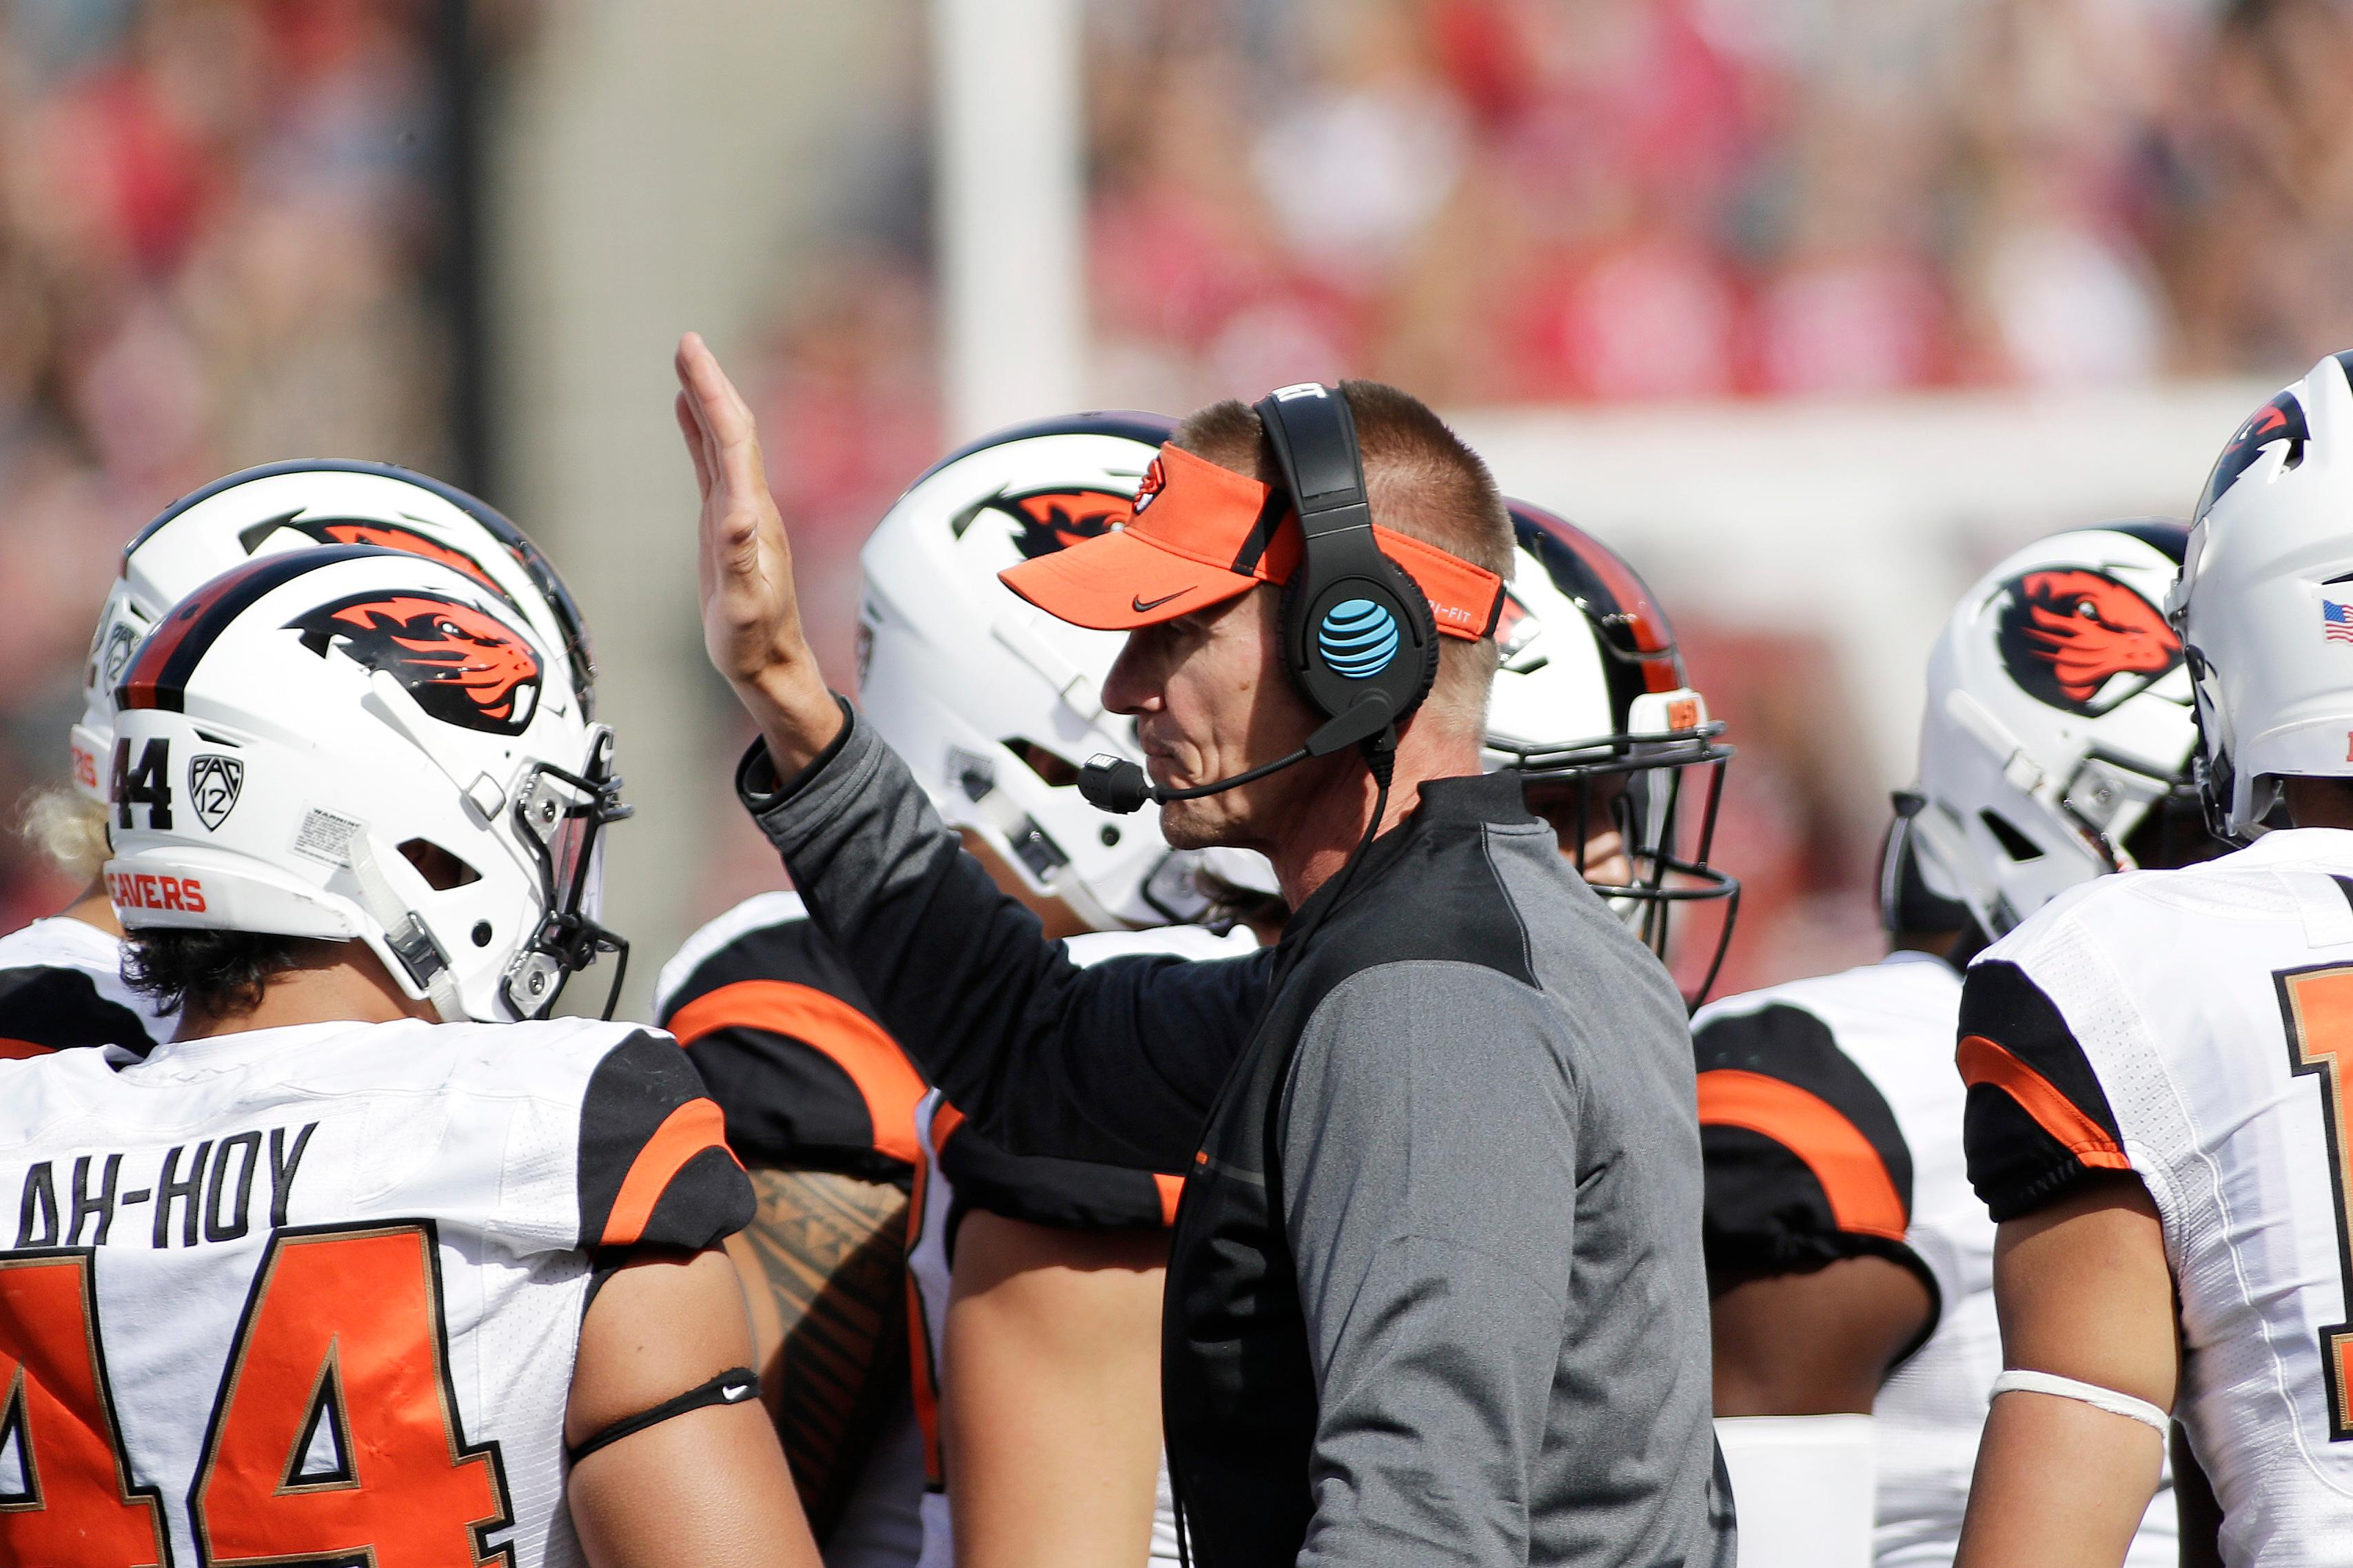 Oregon State head coach Gary Andersen, center, speaks to his players in a huddle during the first half of an NCAA college football game against Washington State in Pullman, Wash., Saturday, Sept. 16, 2017. (AP Photo/Young Kwak)